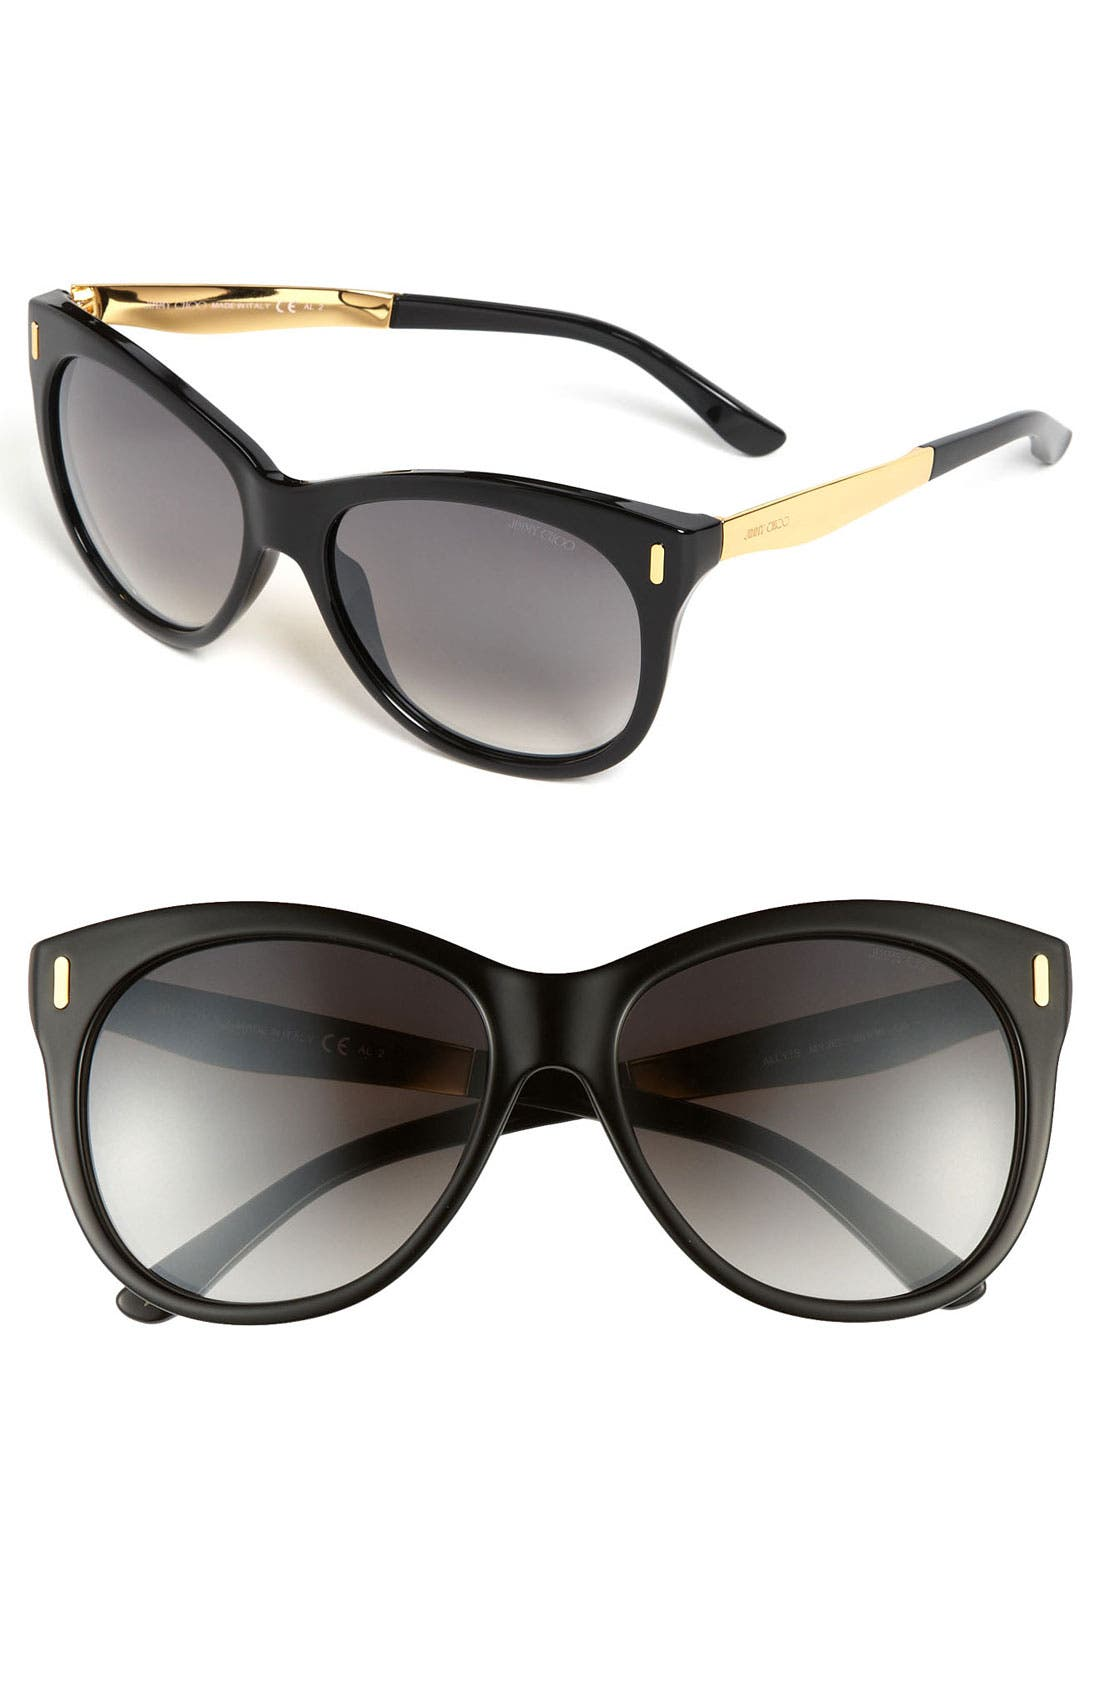 Alternate Image 1 Selected - Jimmy Choo 'Ally' 56mm Retro Sunglasses